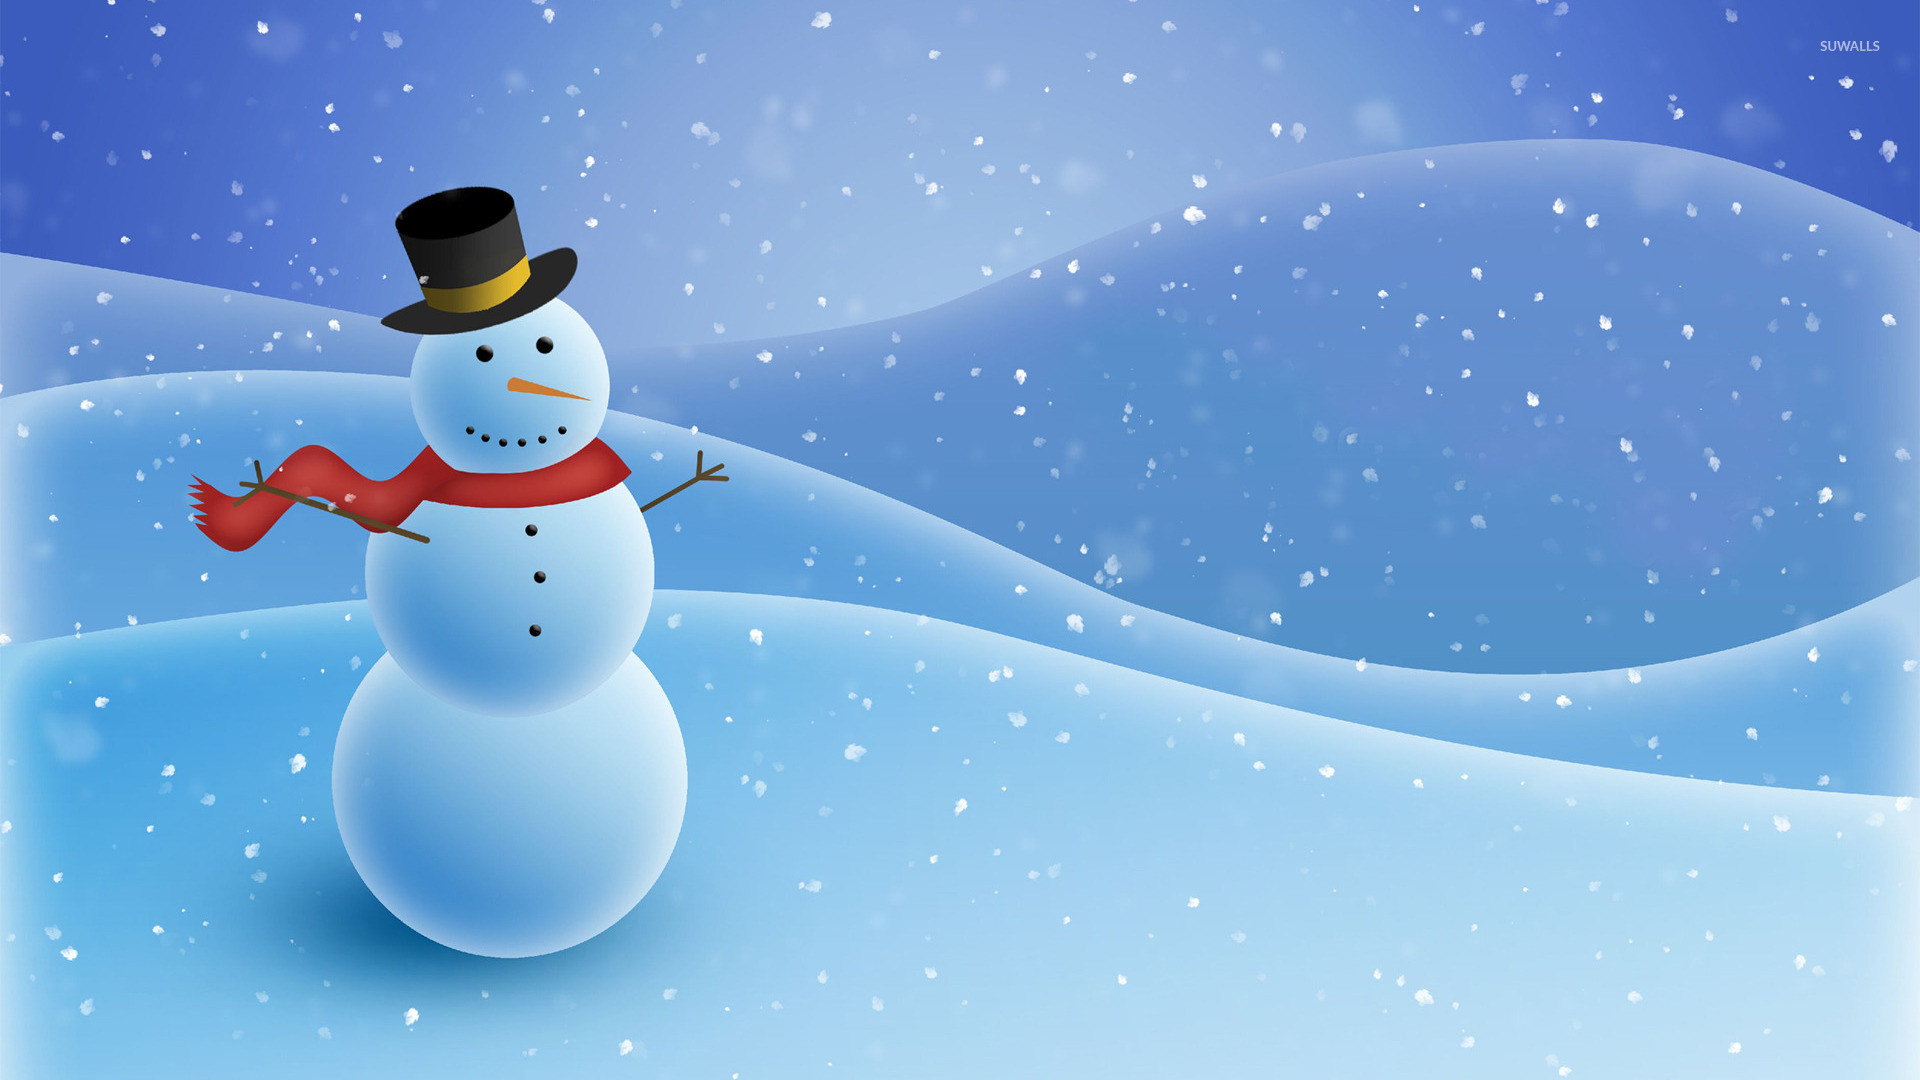 1920x1080 Snowman [3] wallpaper - Holiday wallpapers - #23584